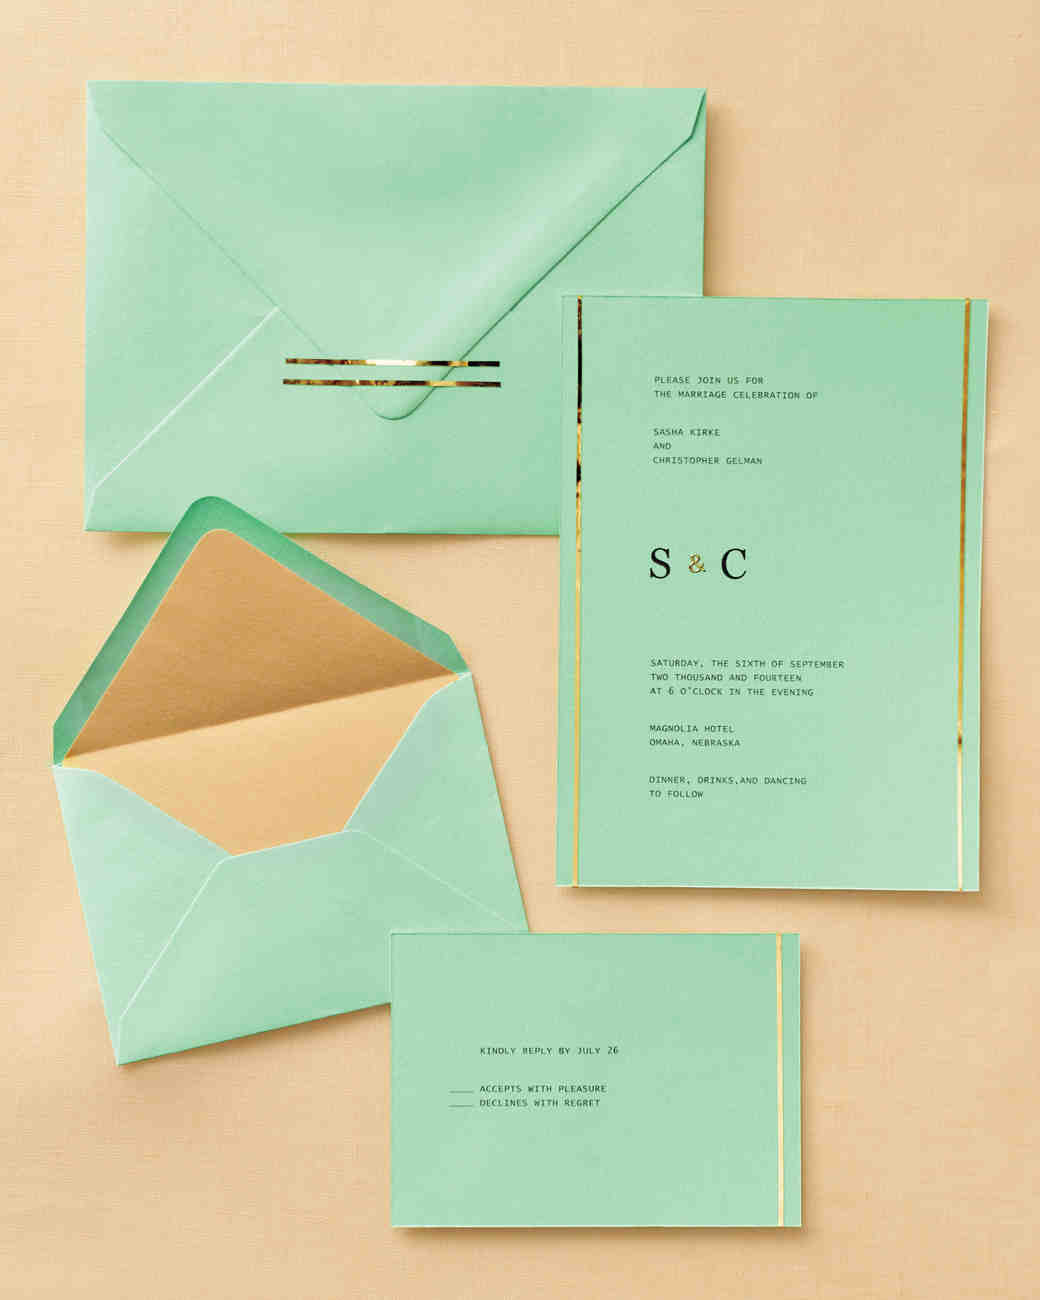 6x9 Wedding Invitation Envelopes: Easy Ways To Upgrade Your Wedding Invitations